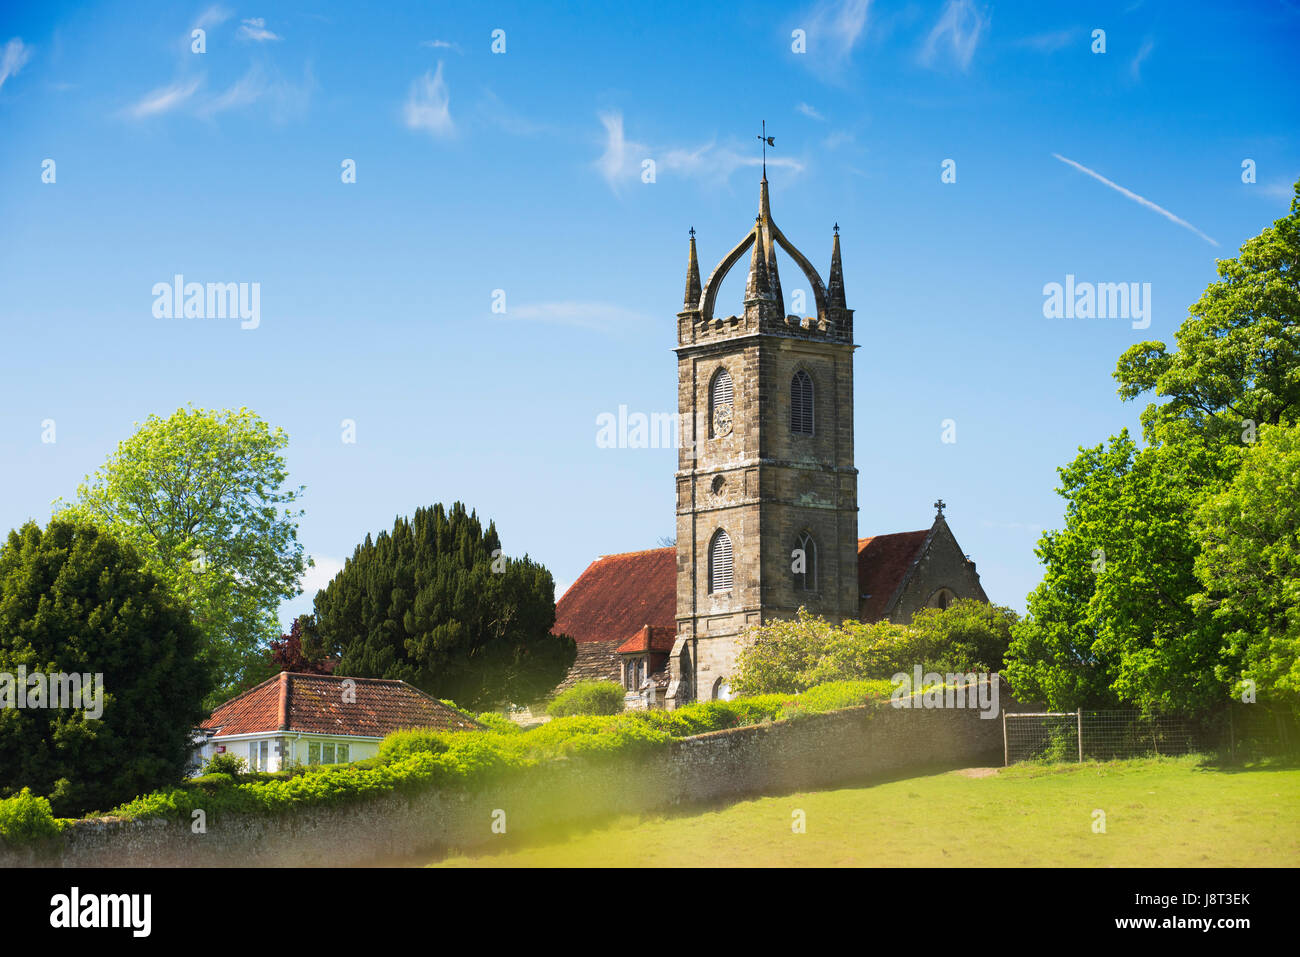 All Hallows church in the village of Tillington close to Petworth with its Scots Crown Spire, West Sussex, UK Stock Photo